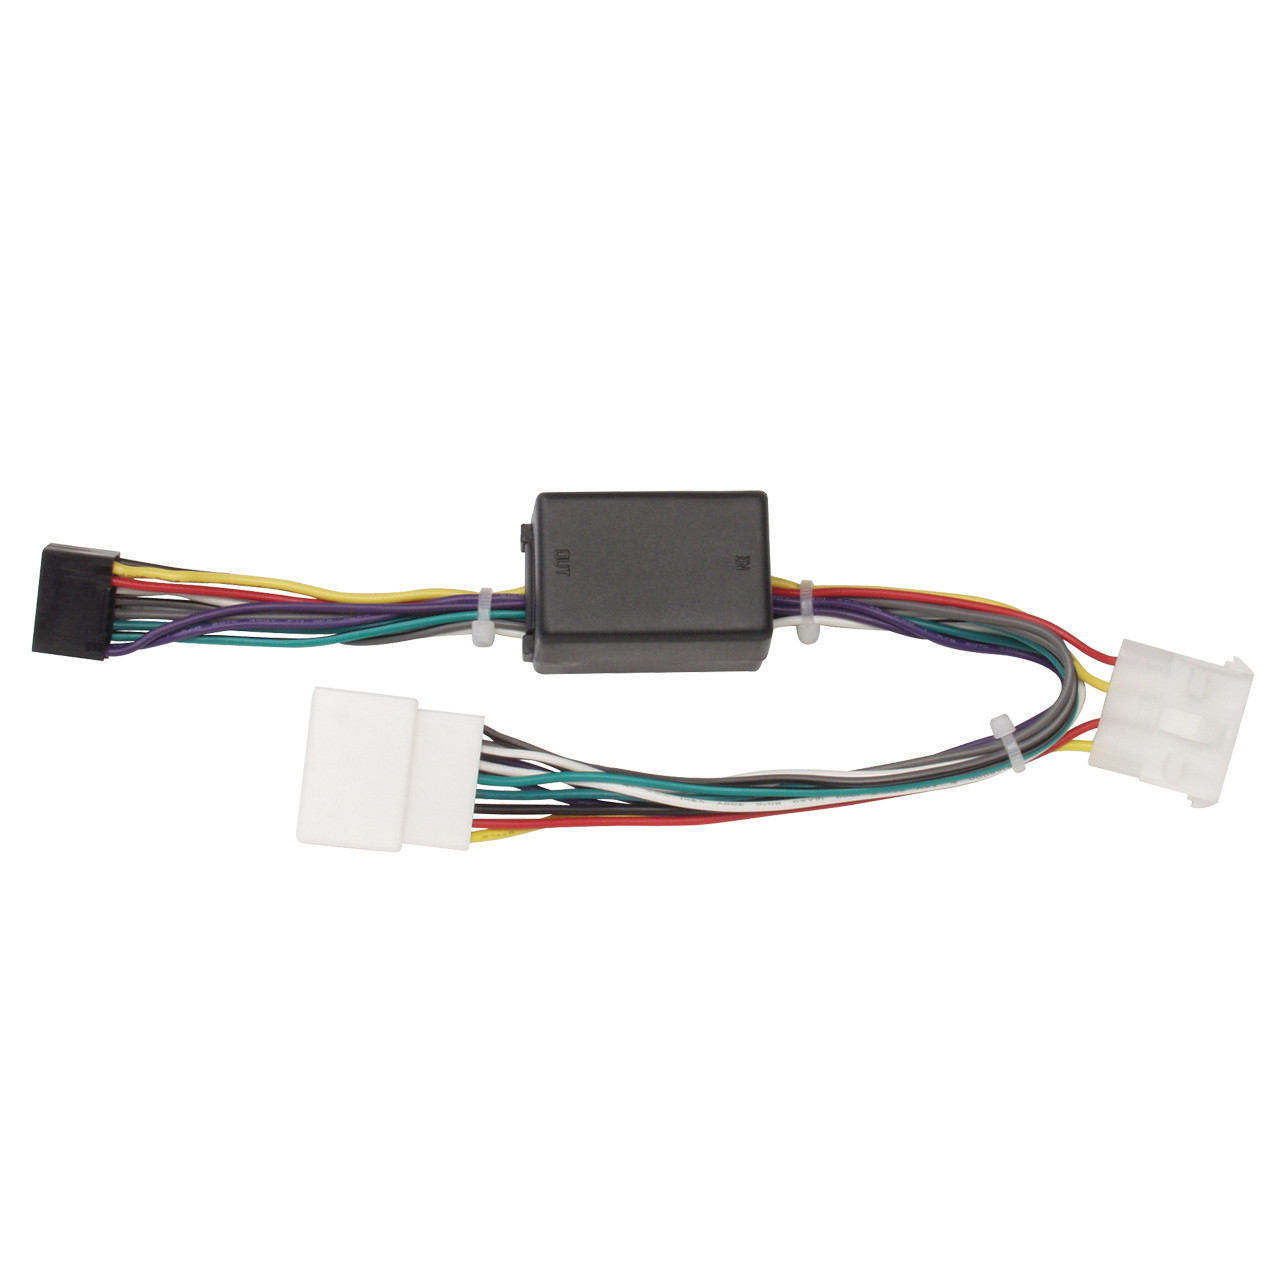 Magnadyne M9900FD-HAR05 | Custom Ford Harness with Noise ... on wire clothing, wire connector, wire ball, wire holder, wire nut, wire cap, wire leads, wire sleeve, wire antenna, wire lamp,